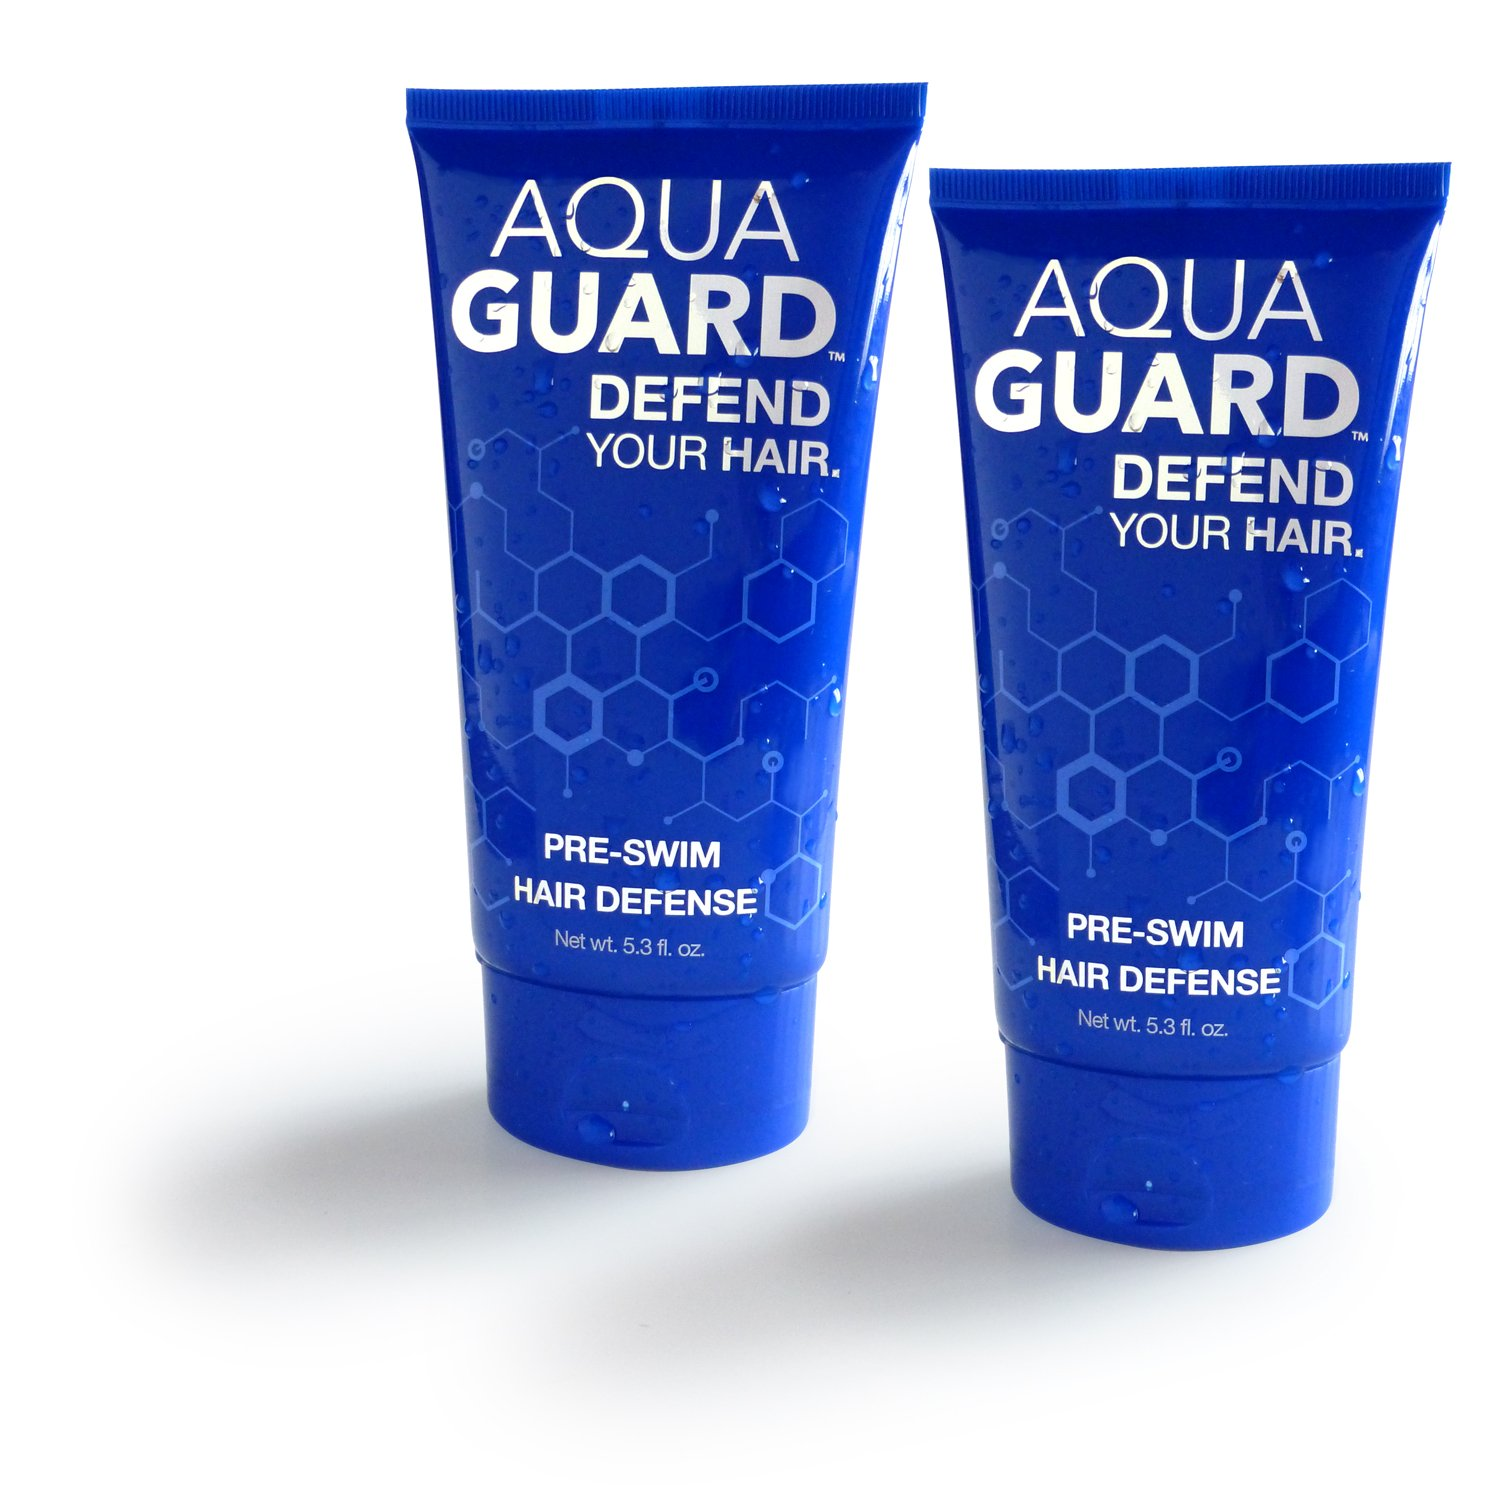 AquaGuard Pre-Swim Hair Defense 5.3 oz